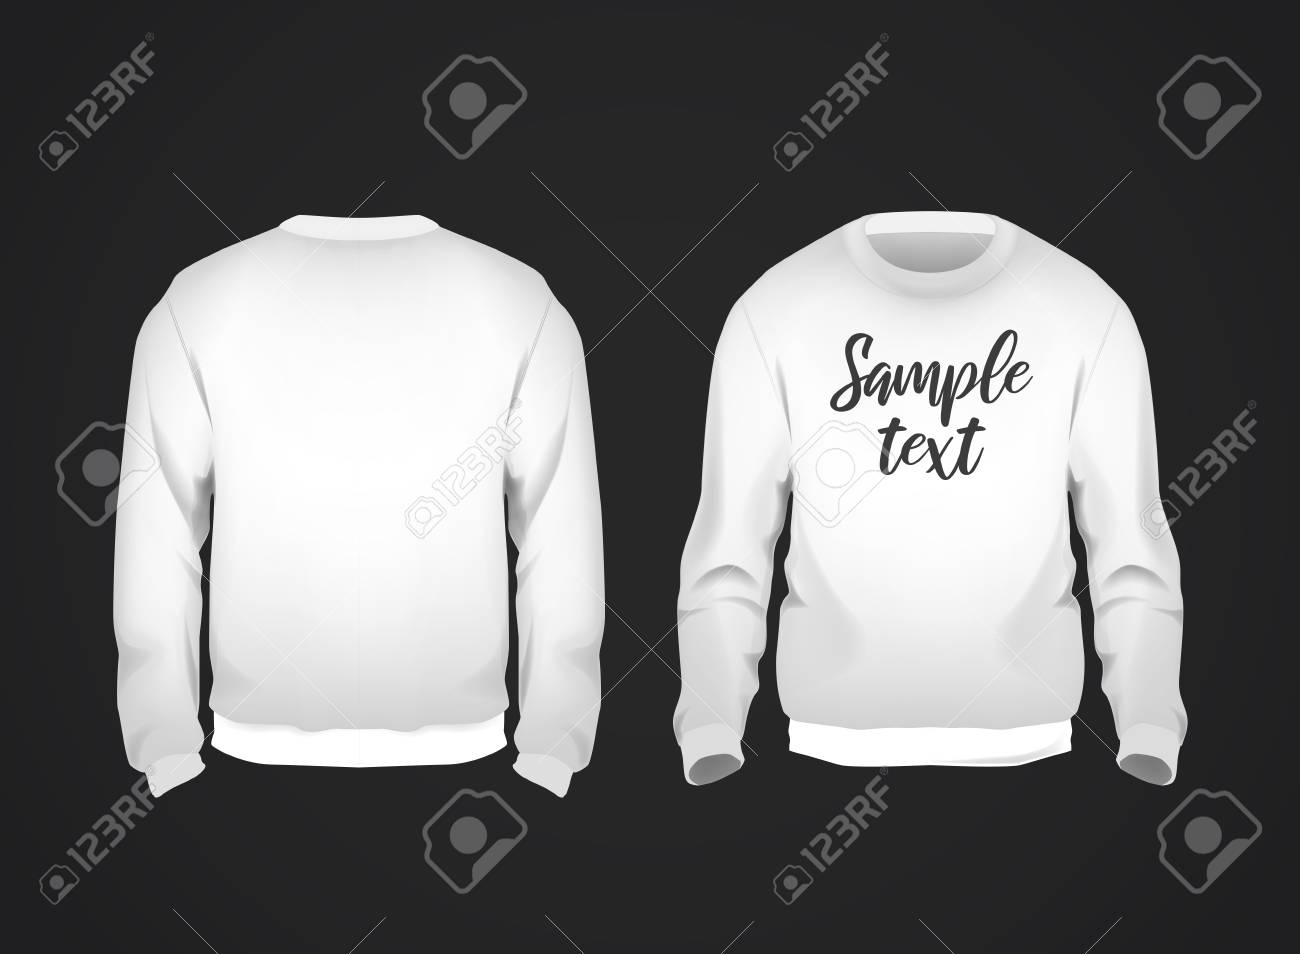 White men's sweatshirt template with sample text front and back view. Hoodie for branding or advertising. - 125276391